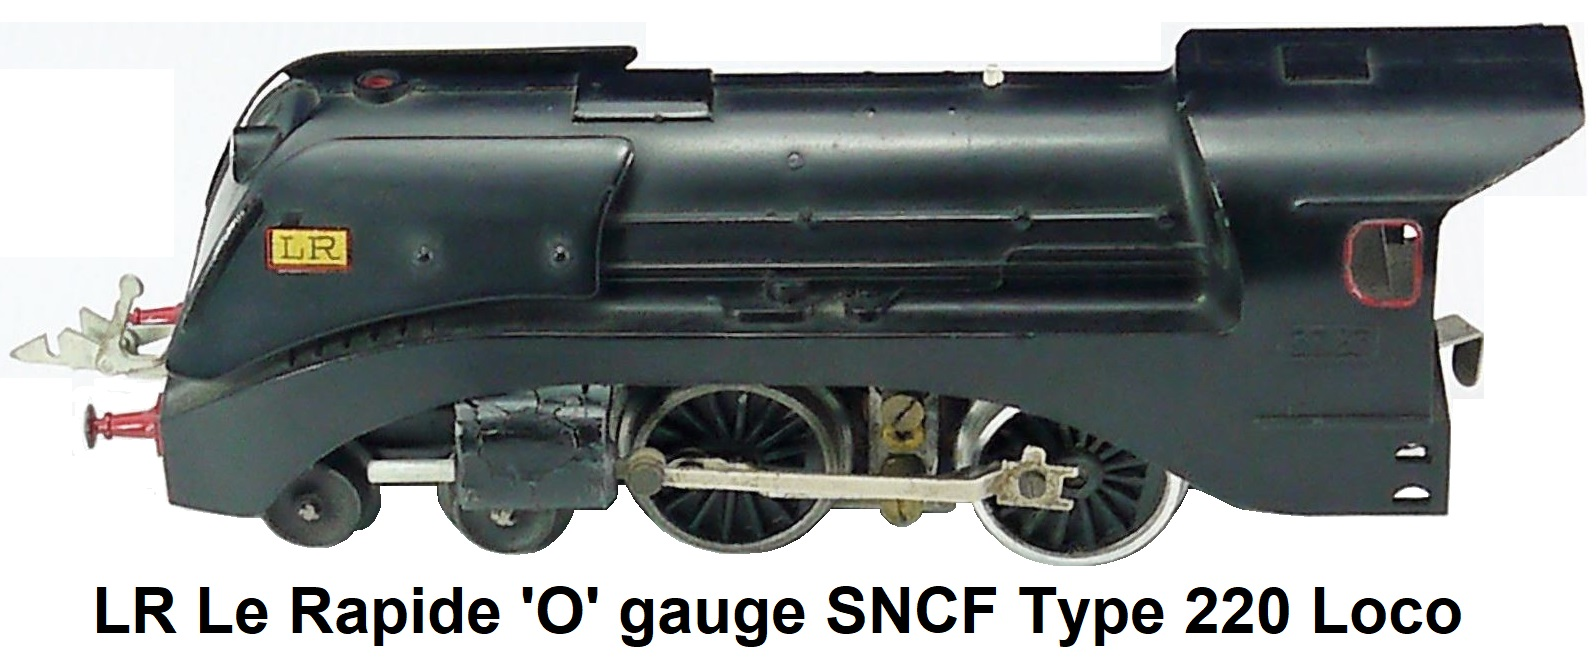 LR Le Rapide 'O' gauge SNCF Type 220 Steam Outline Locomotive